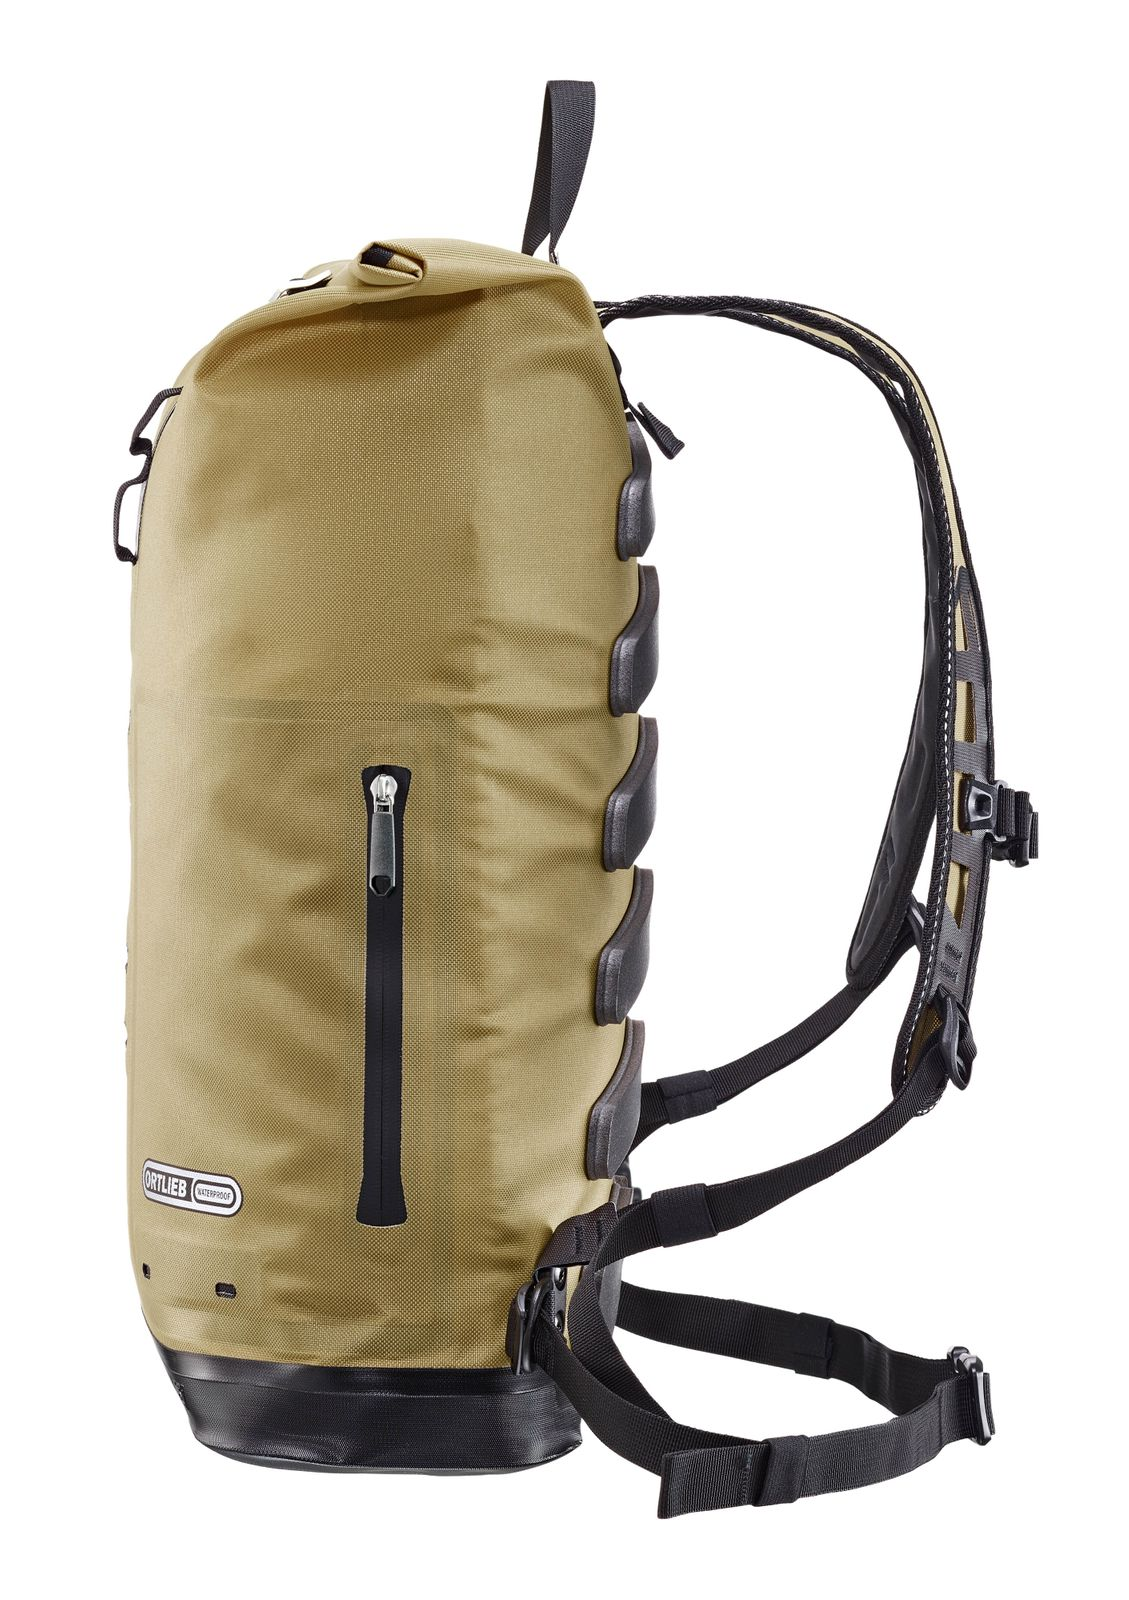 ORTLIEB City Commuter-Daypack City Backpack 21L Mustard